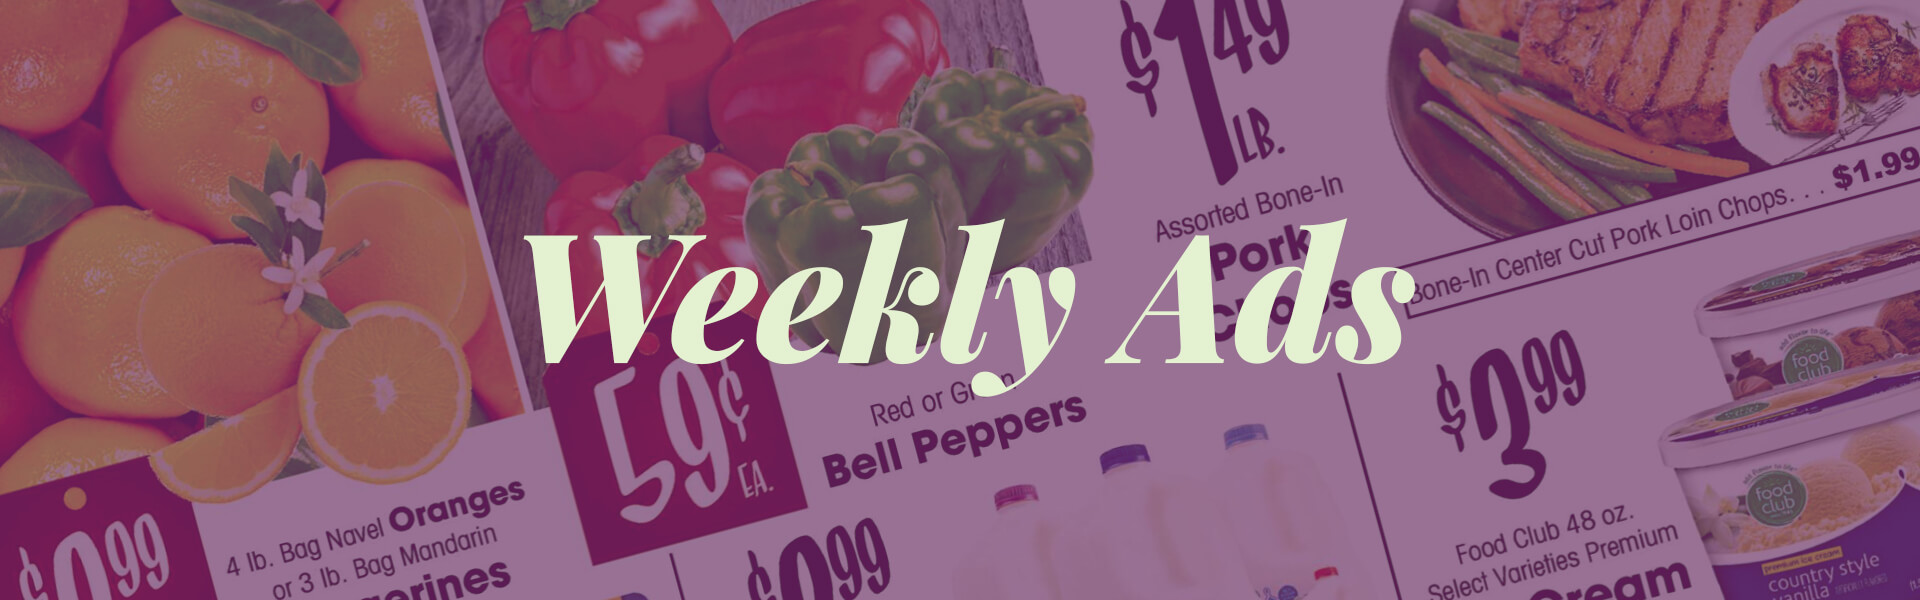 weekly ads for the market